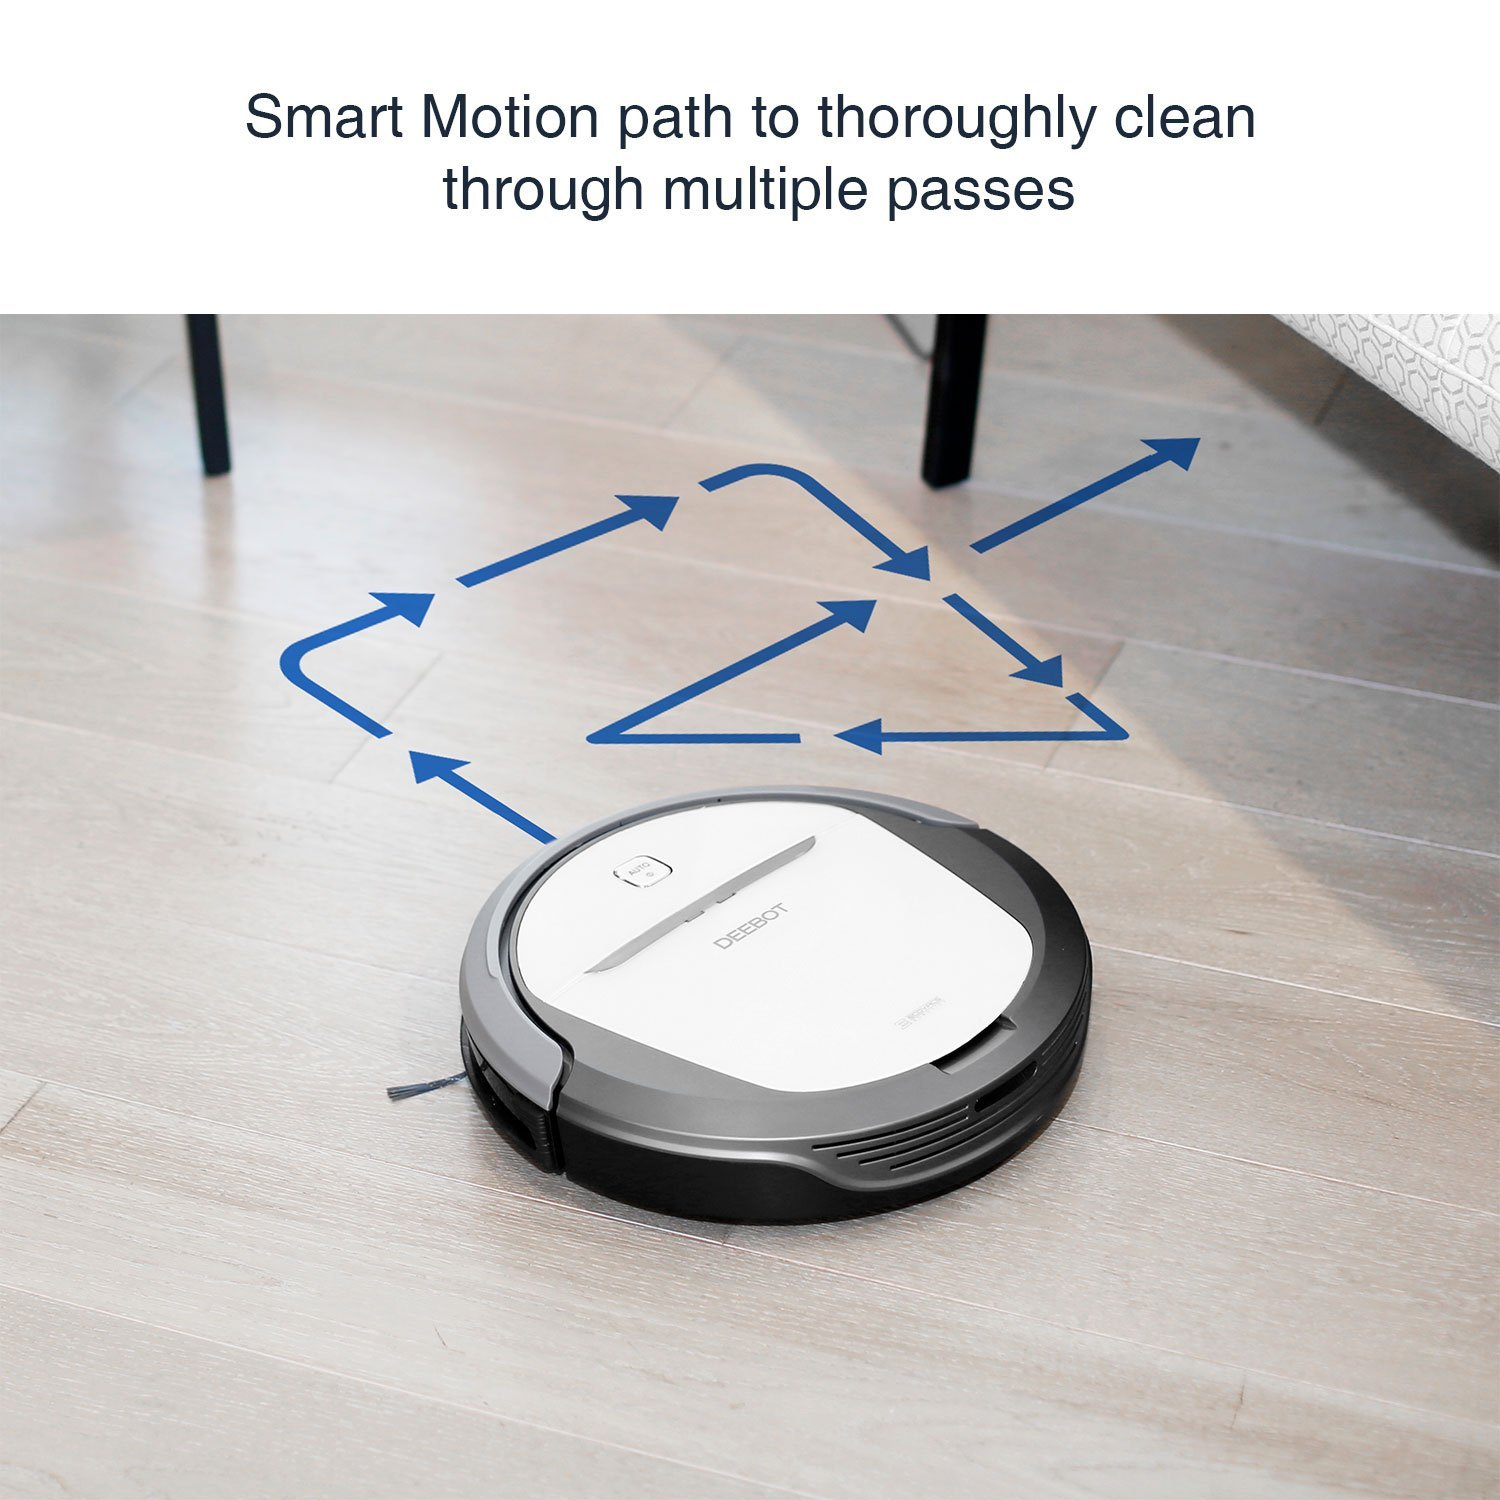 ECOVACS DeeBot M80, Cleaning PatternVacuum Fanatics, Reviews and Comparisons of Robotic Cleaners